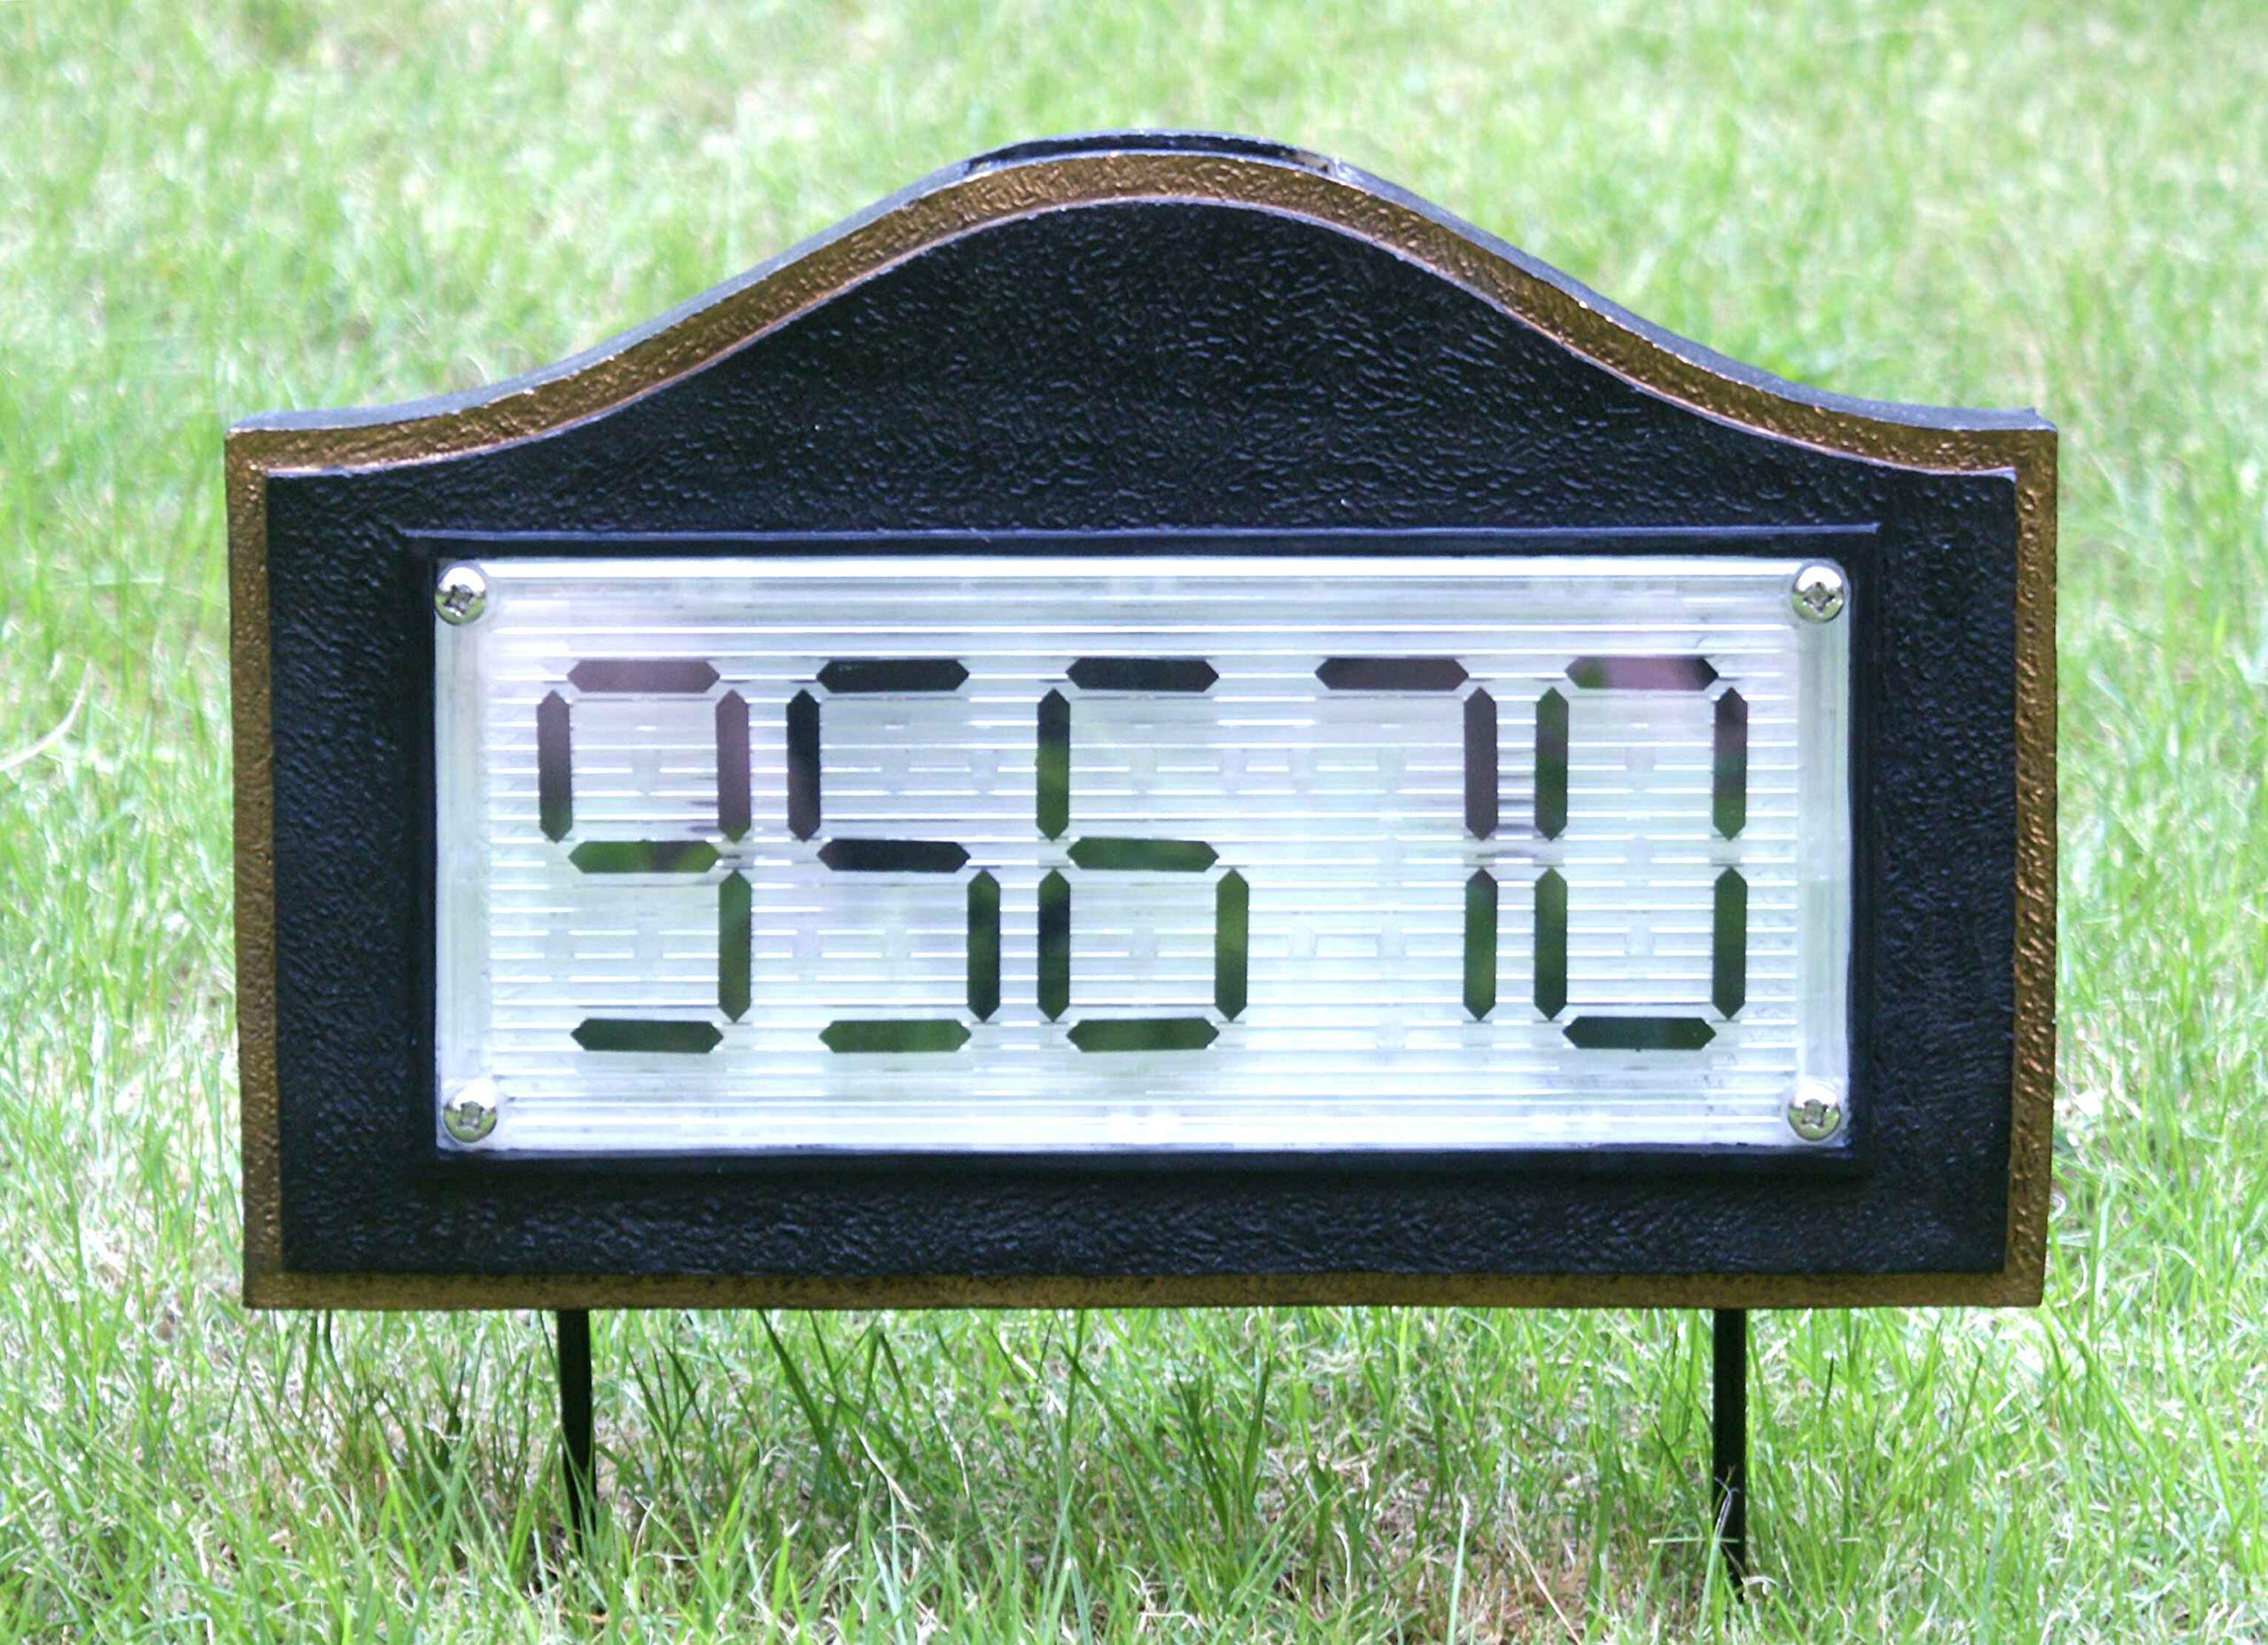 GEMART Solar Powered House Number Address Signs (Arch)